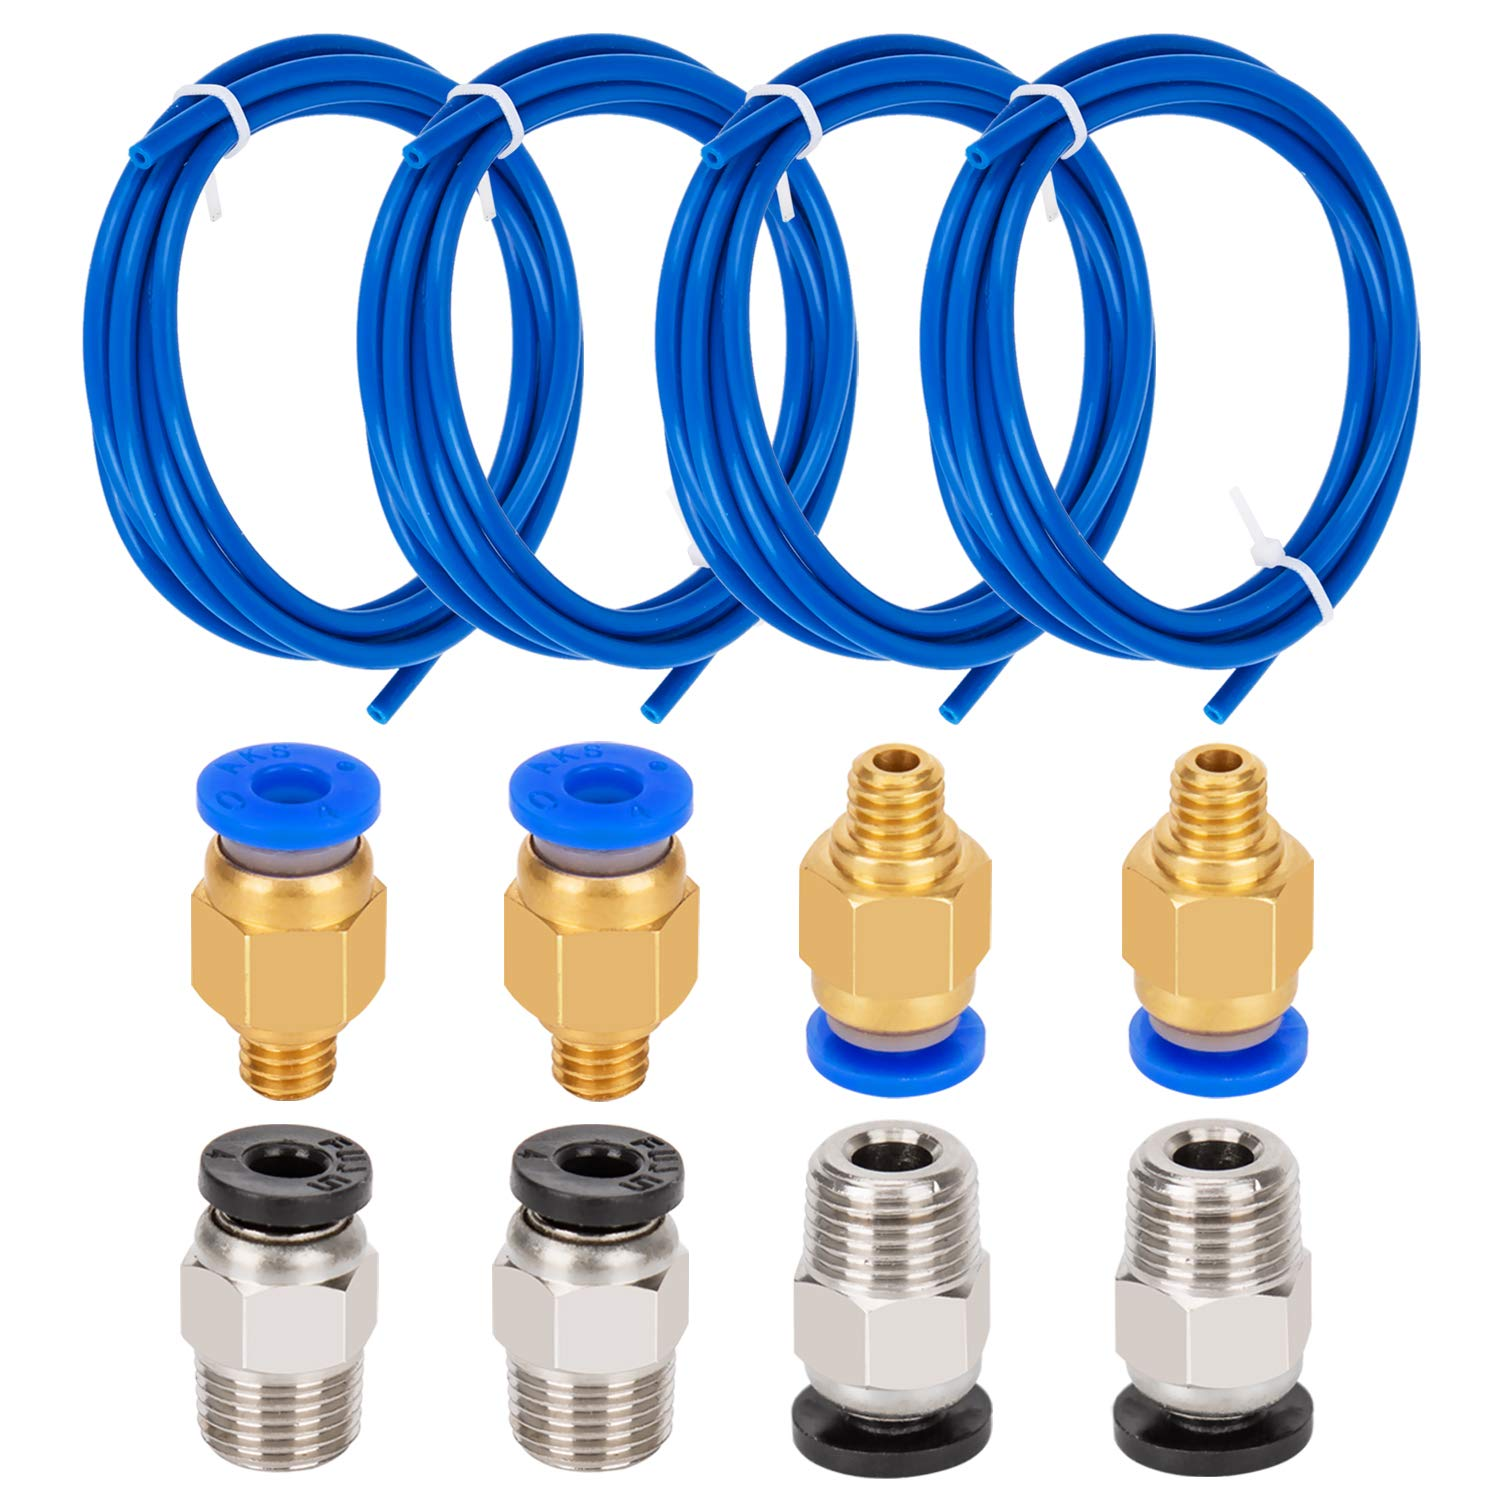 with 8 Pieces PC4-M6 Fittings and 8 Pieces PC4-M10 Male Straight Pneumatic PTFE Tube Push Fitting Connector for 3D Printer 1.75mm Filament 1 Meter SIQUK 4 Pieces Teflon Tube PTFE Tubing